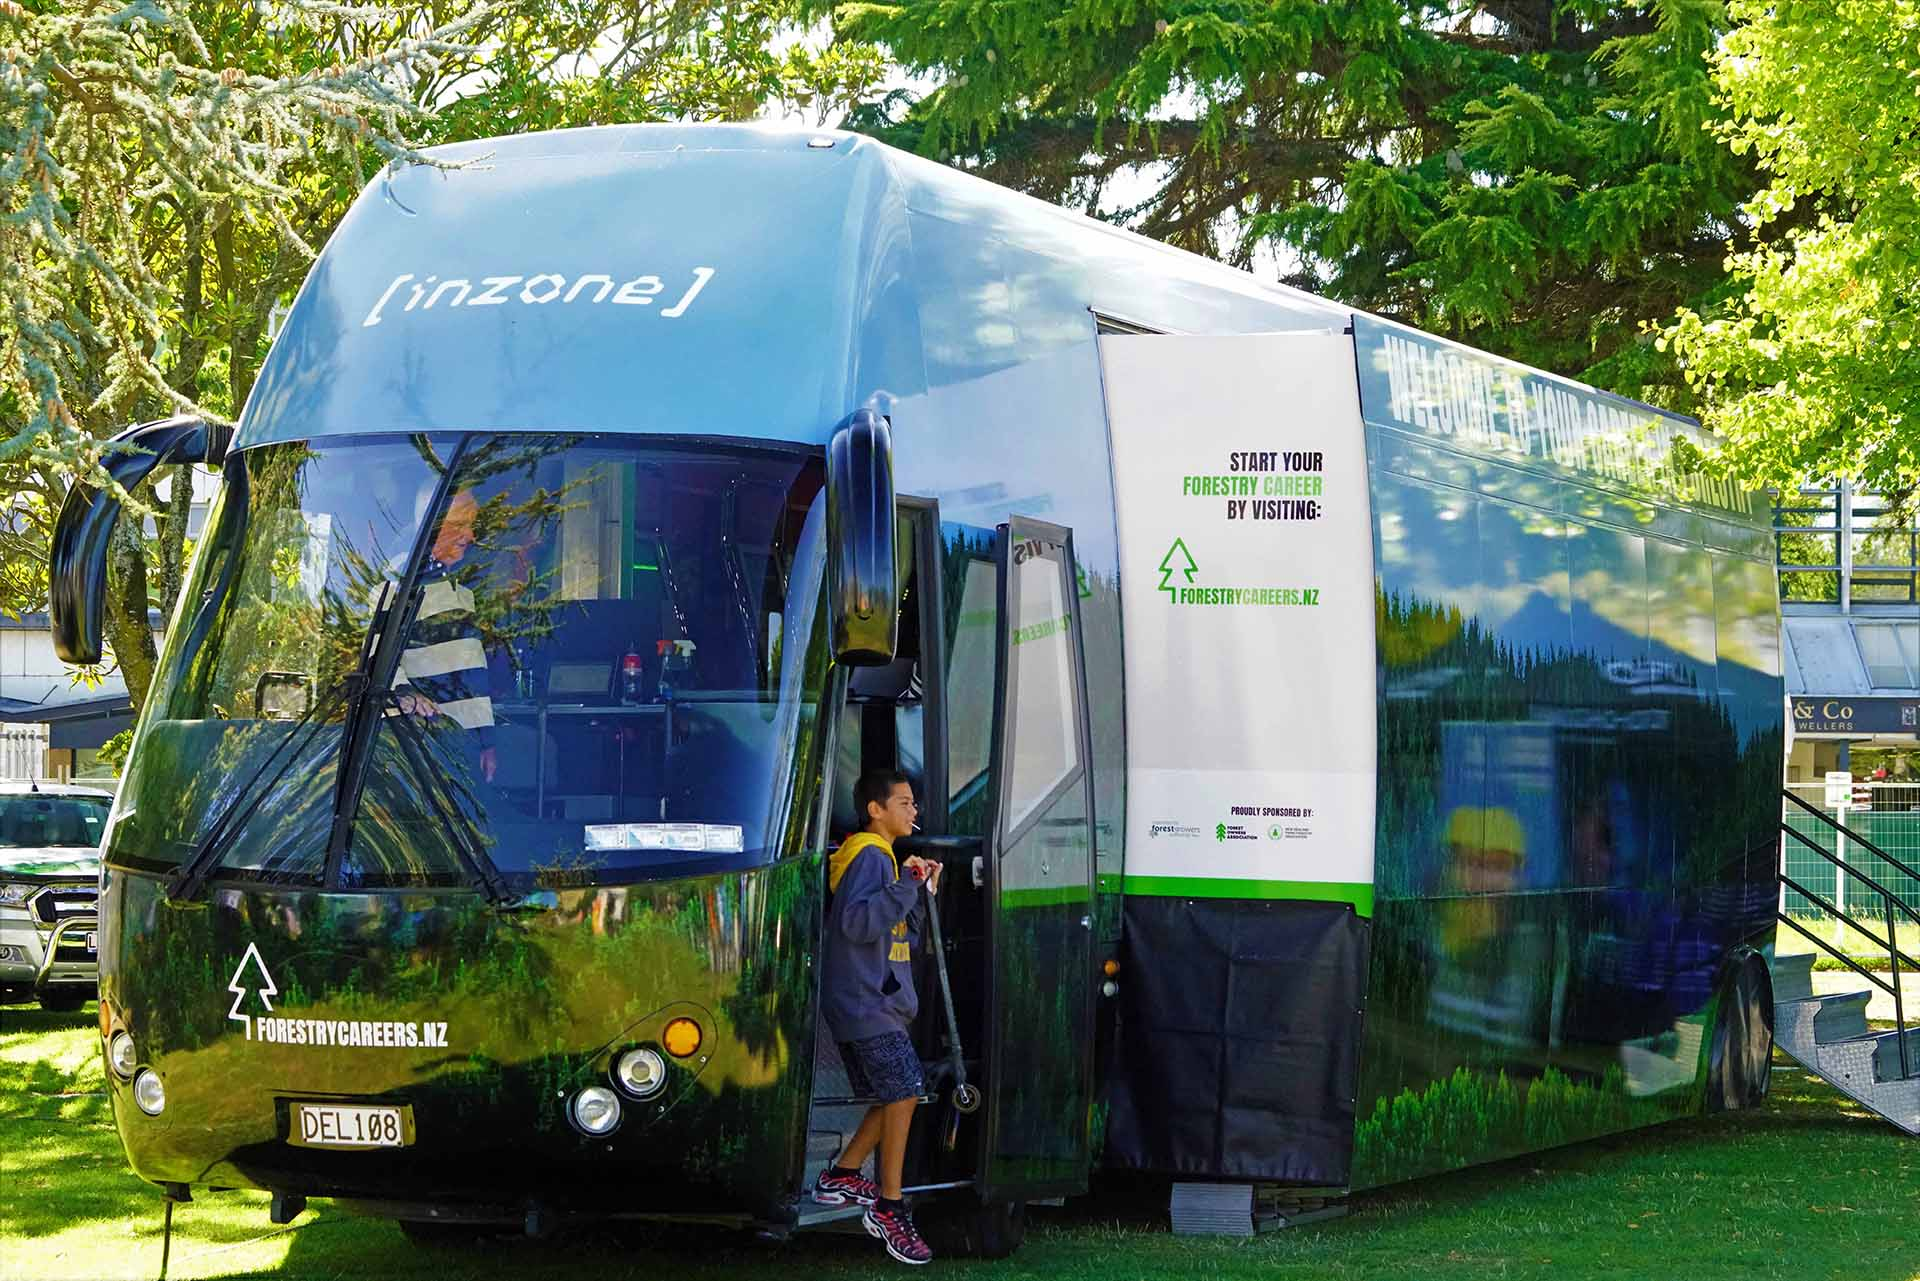 forestry careers bus